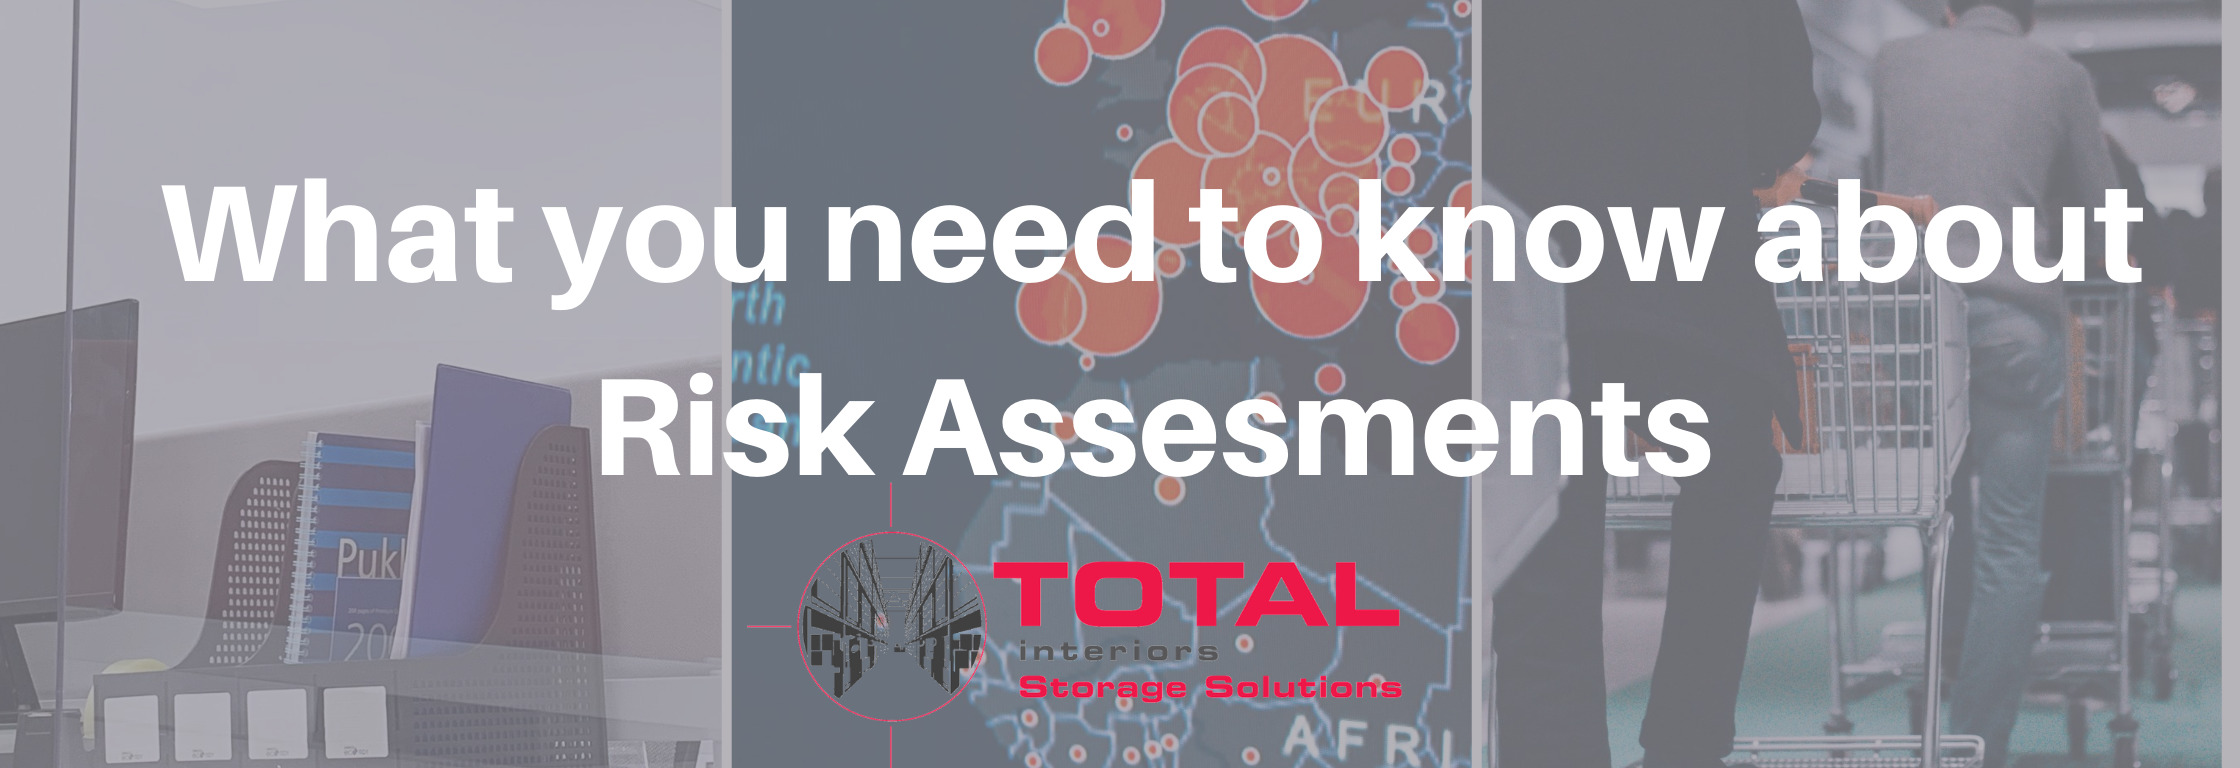 What you need to know about risk assessments